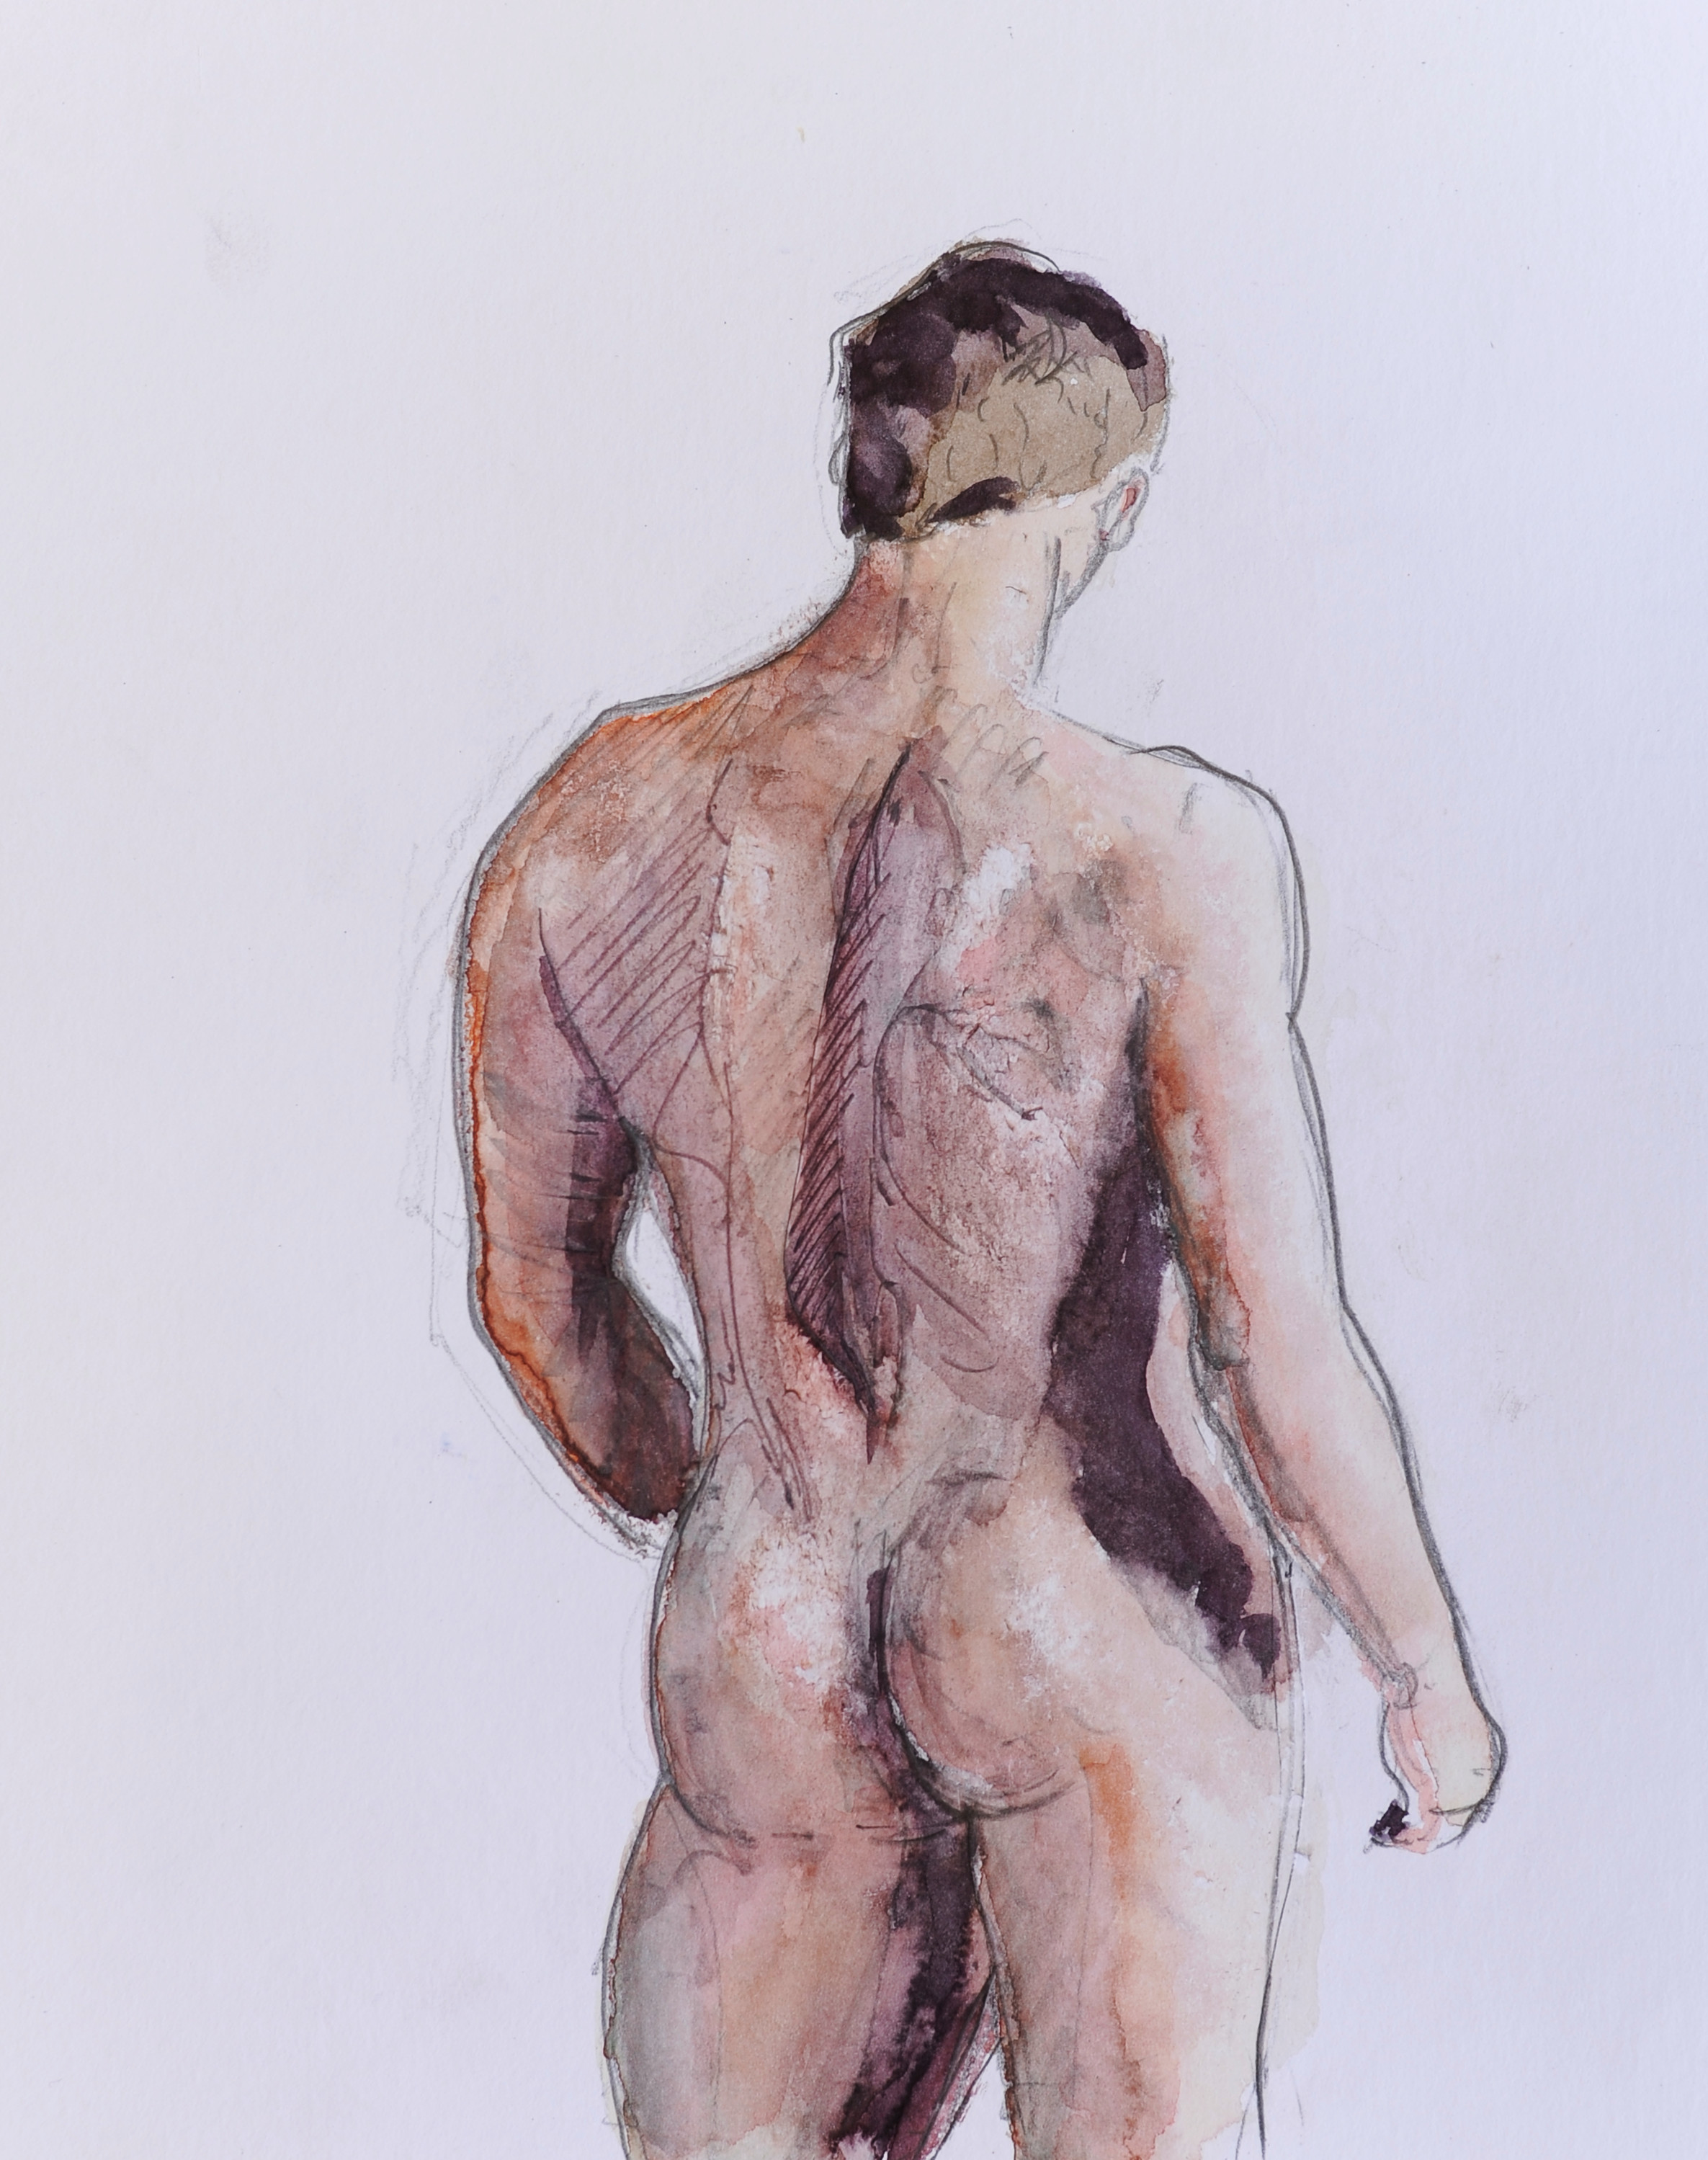 Male Nude Back 2019 [Watercolor and graphite on paper 13x10]